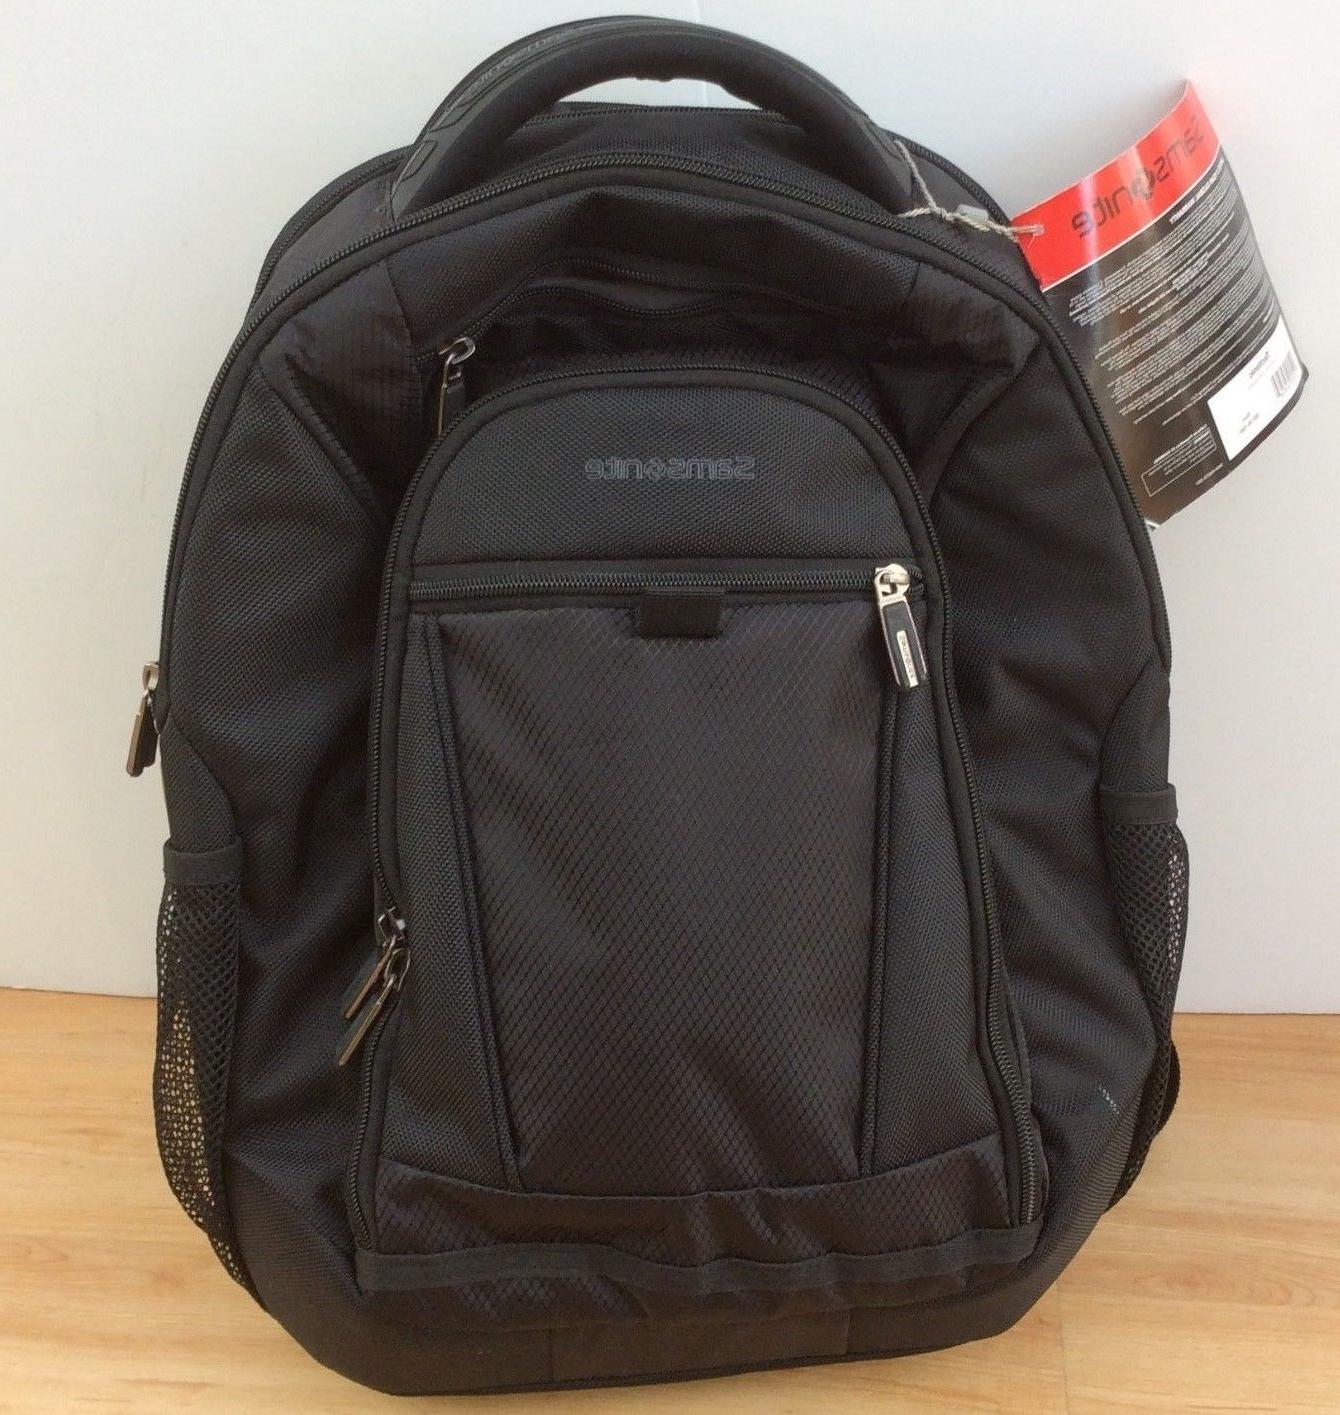 Samsonite Laptop /MacBook Black Backpack New